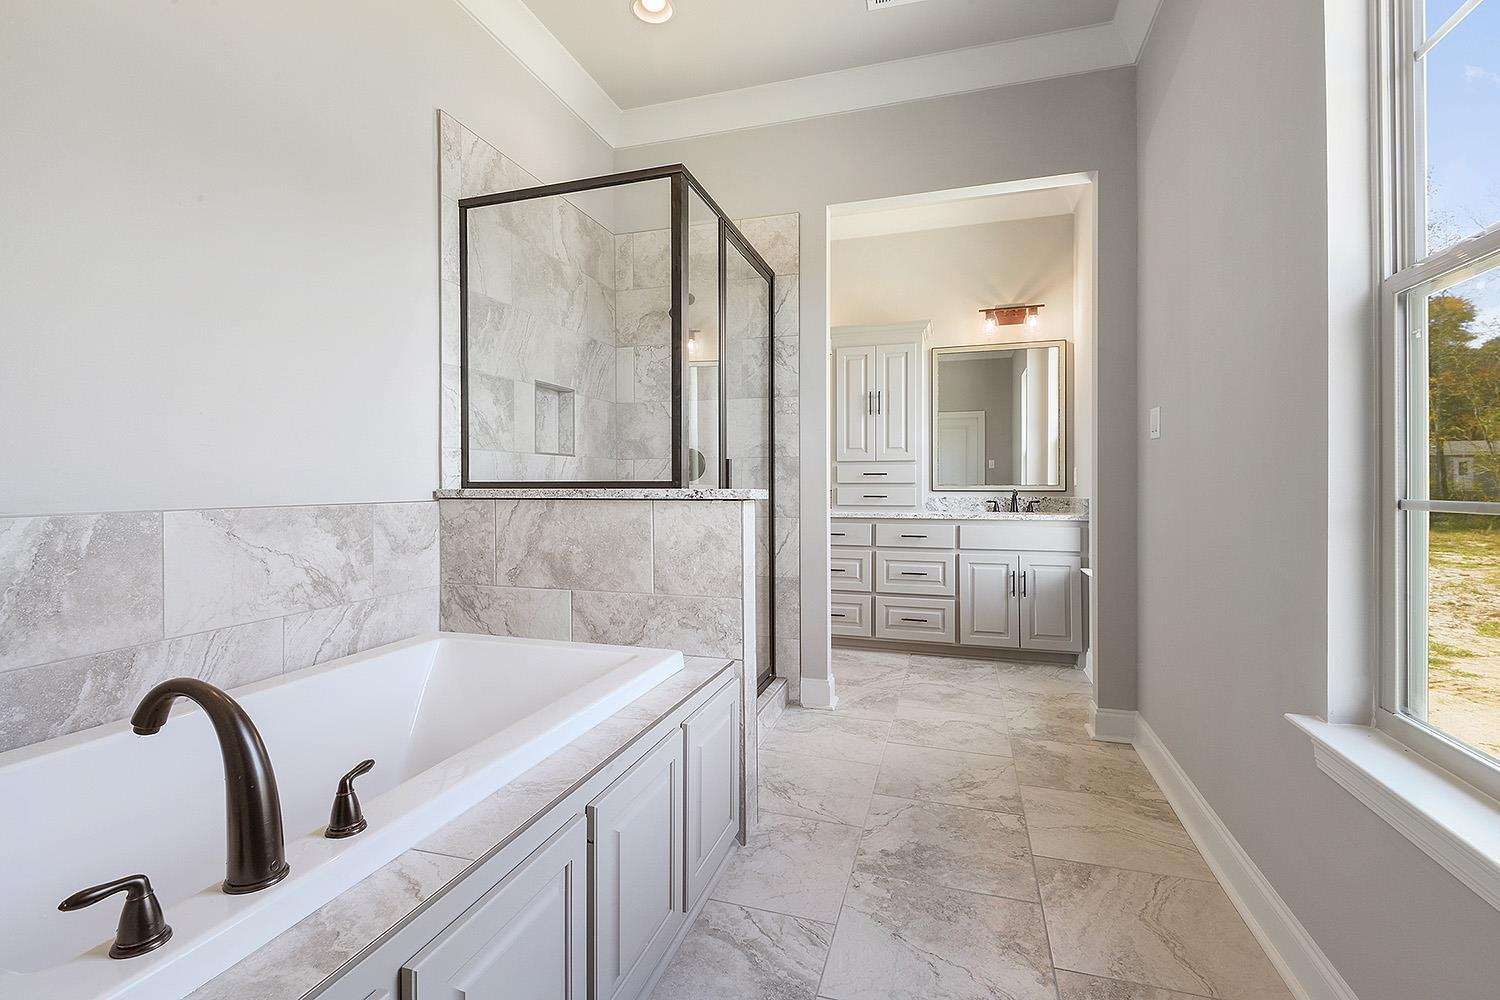 Bathroom featured in the Macon II By Willie & Willie  in Baton Rouge, LA